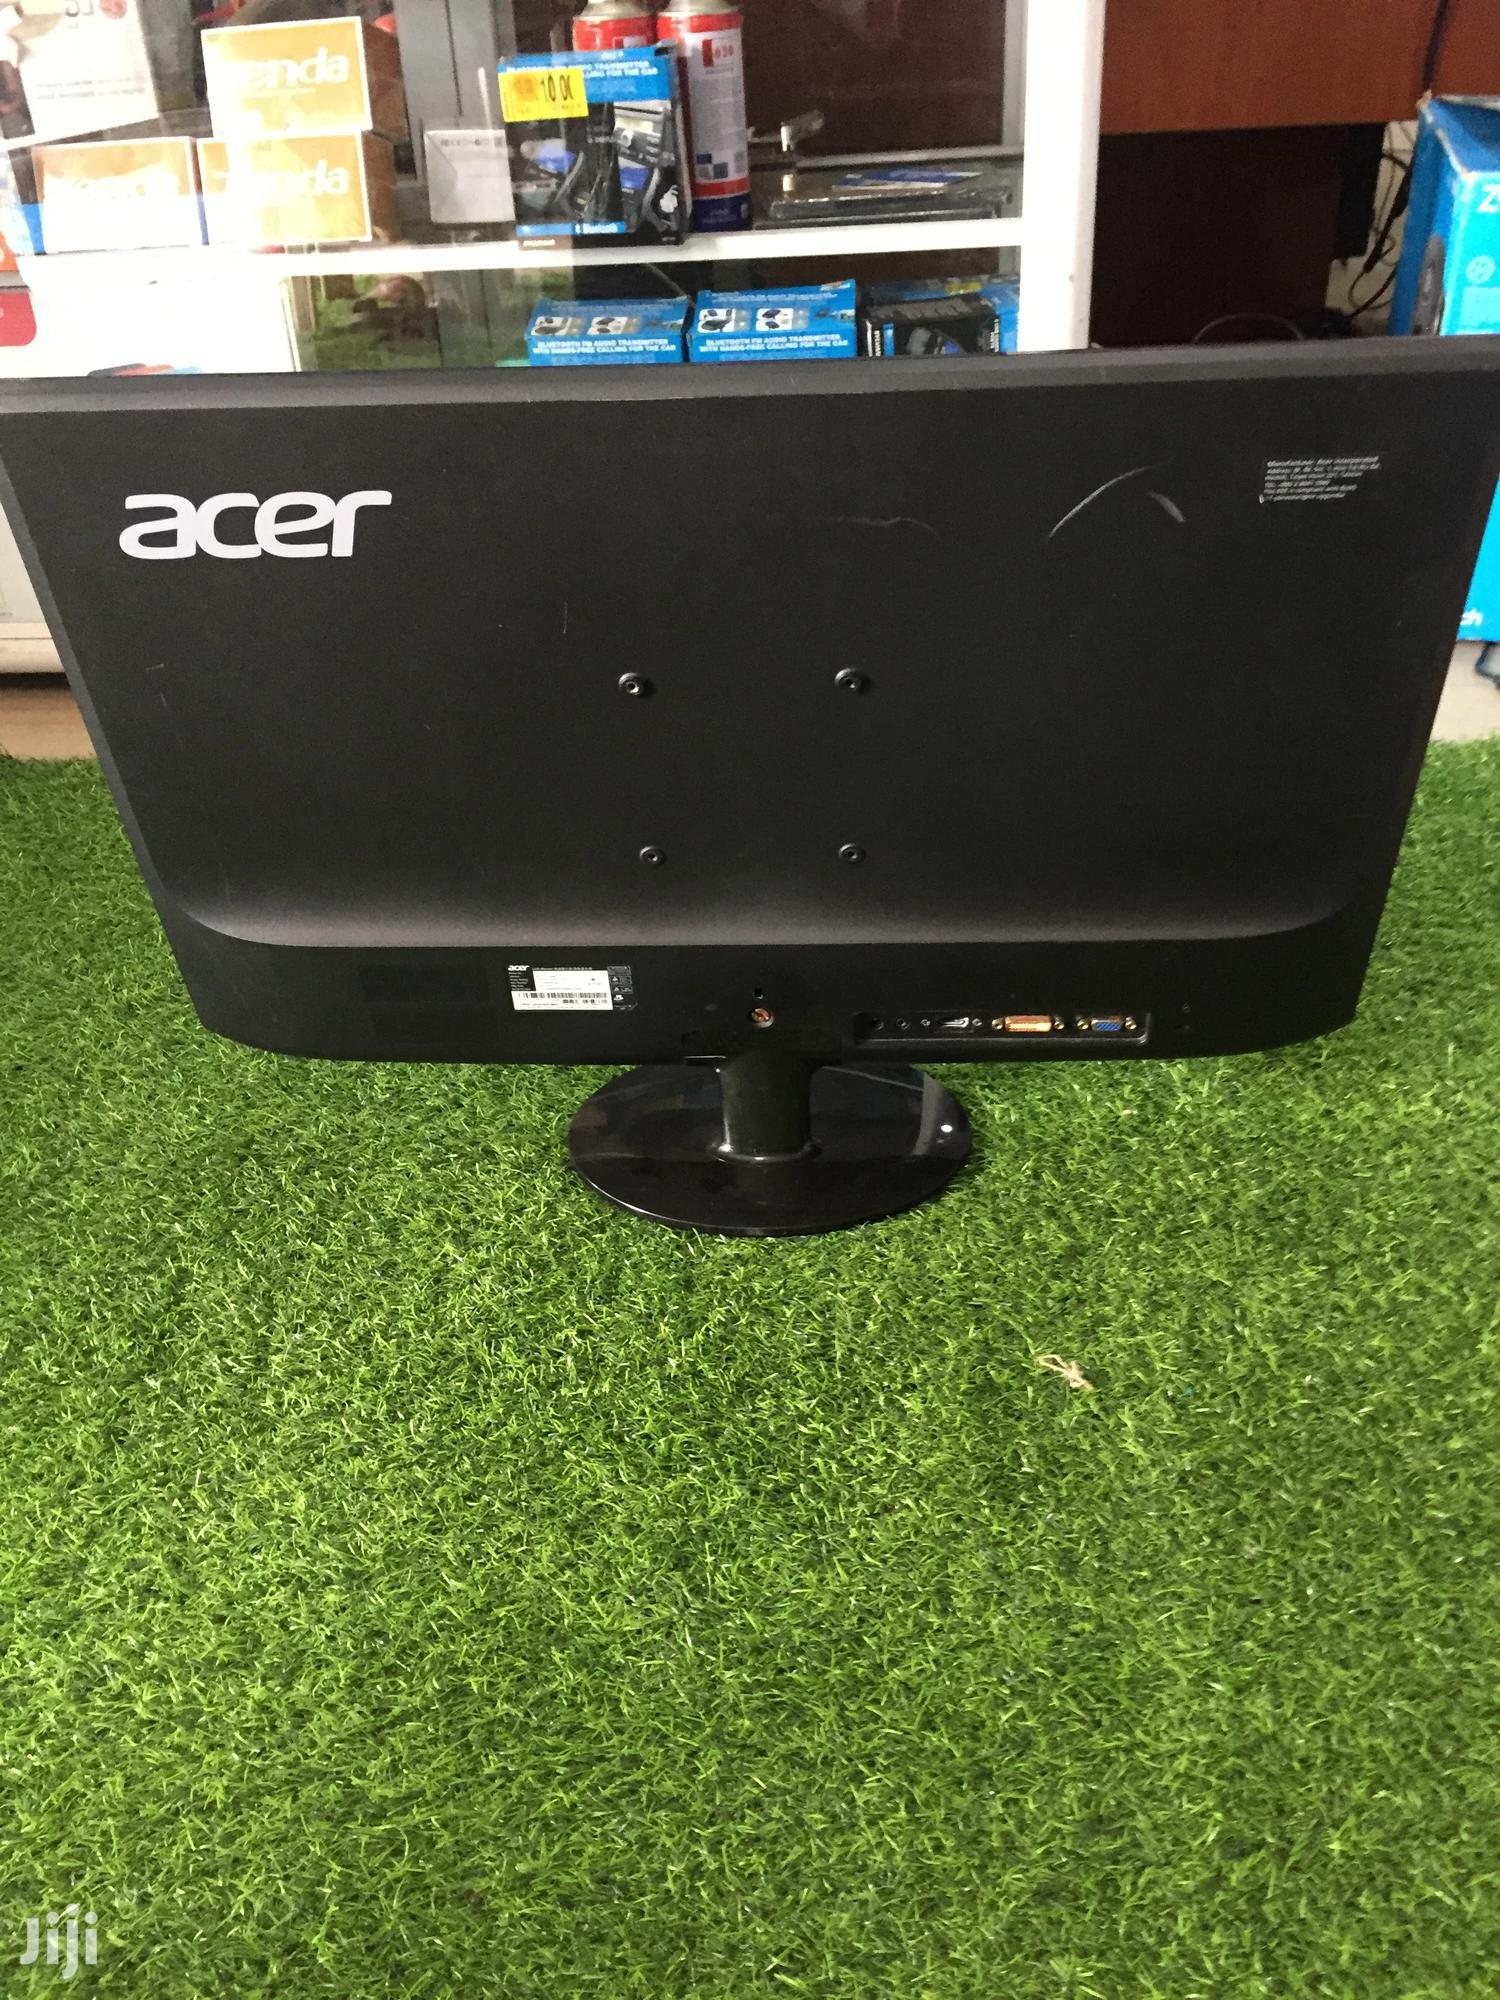 Archive: Acer S271HL 27-Inches Screen LCD Monitor